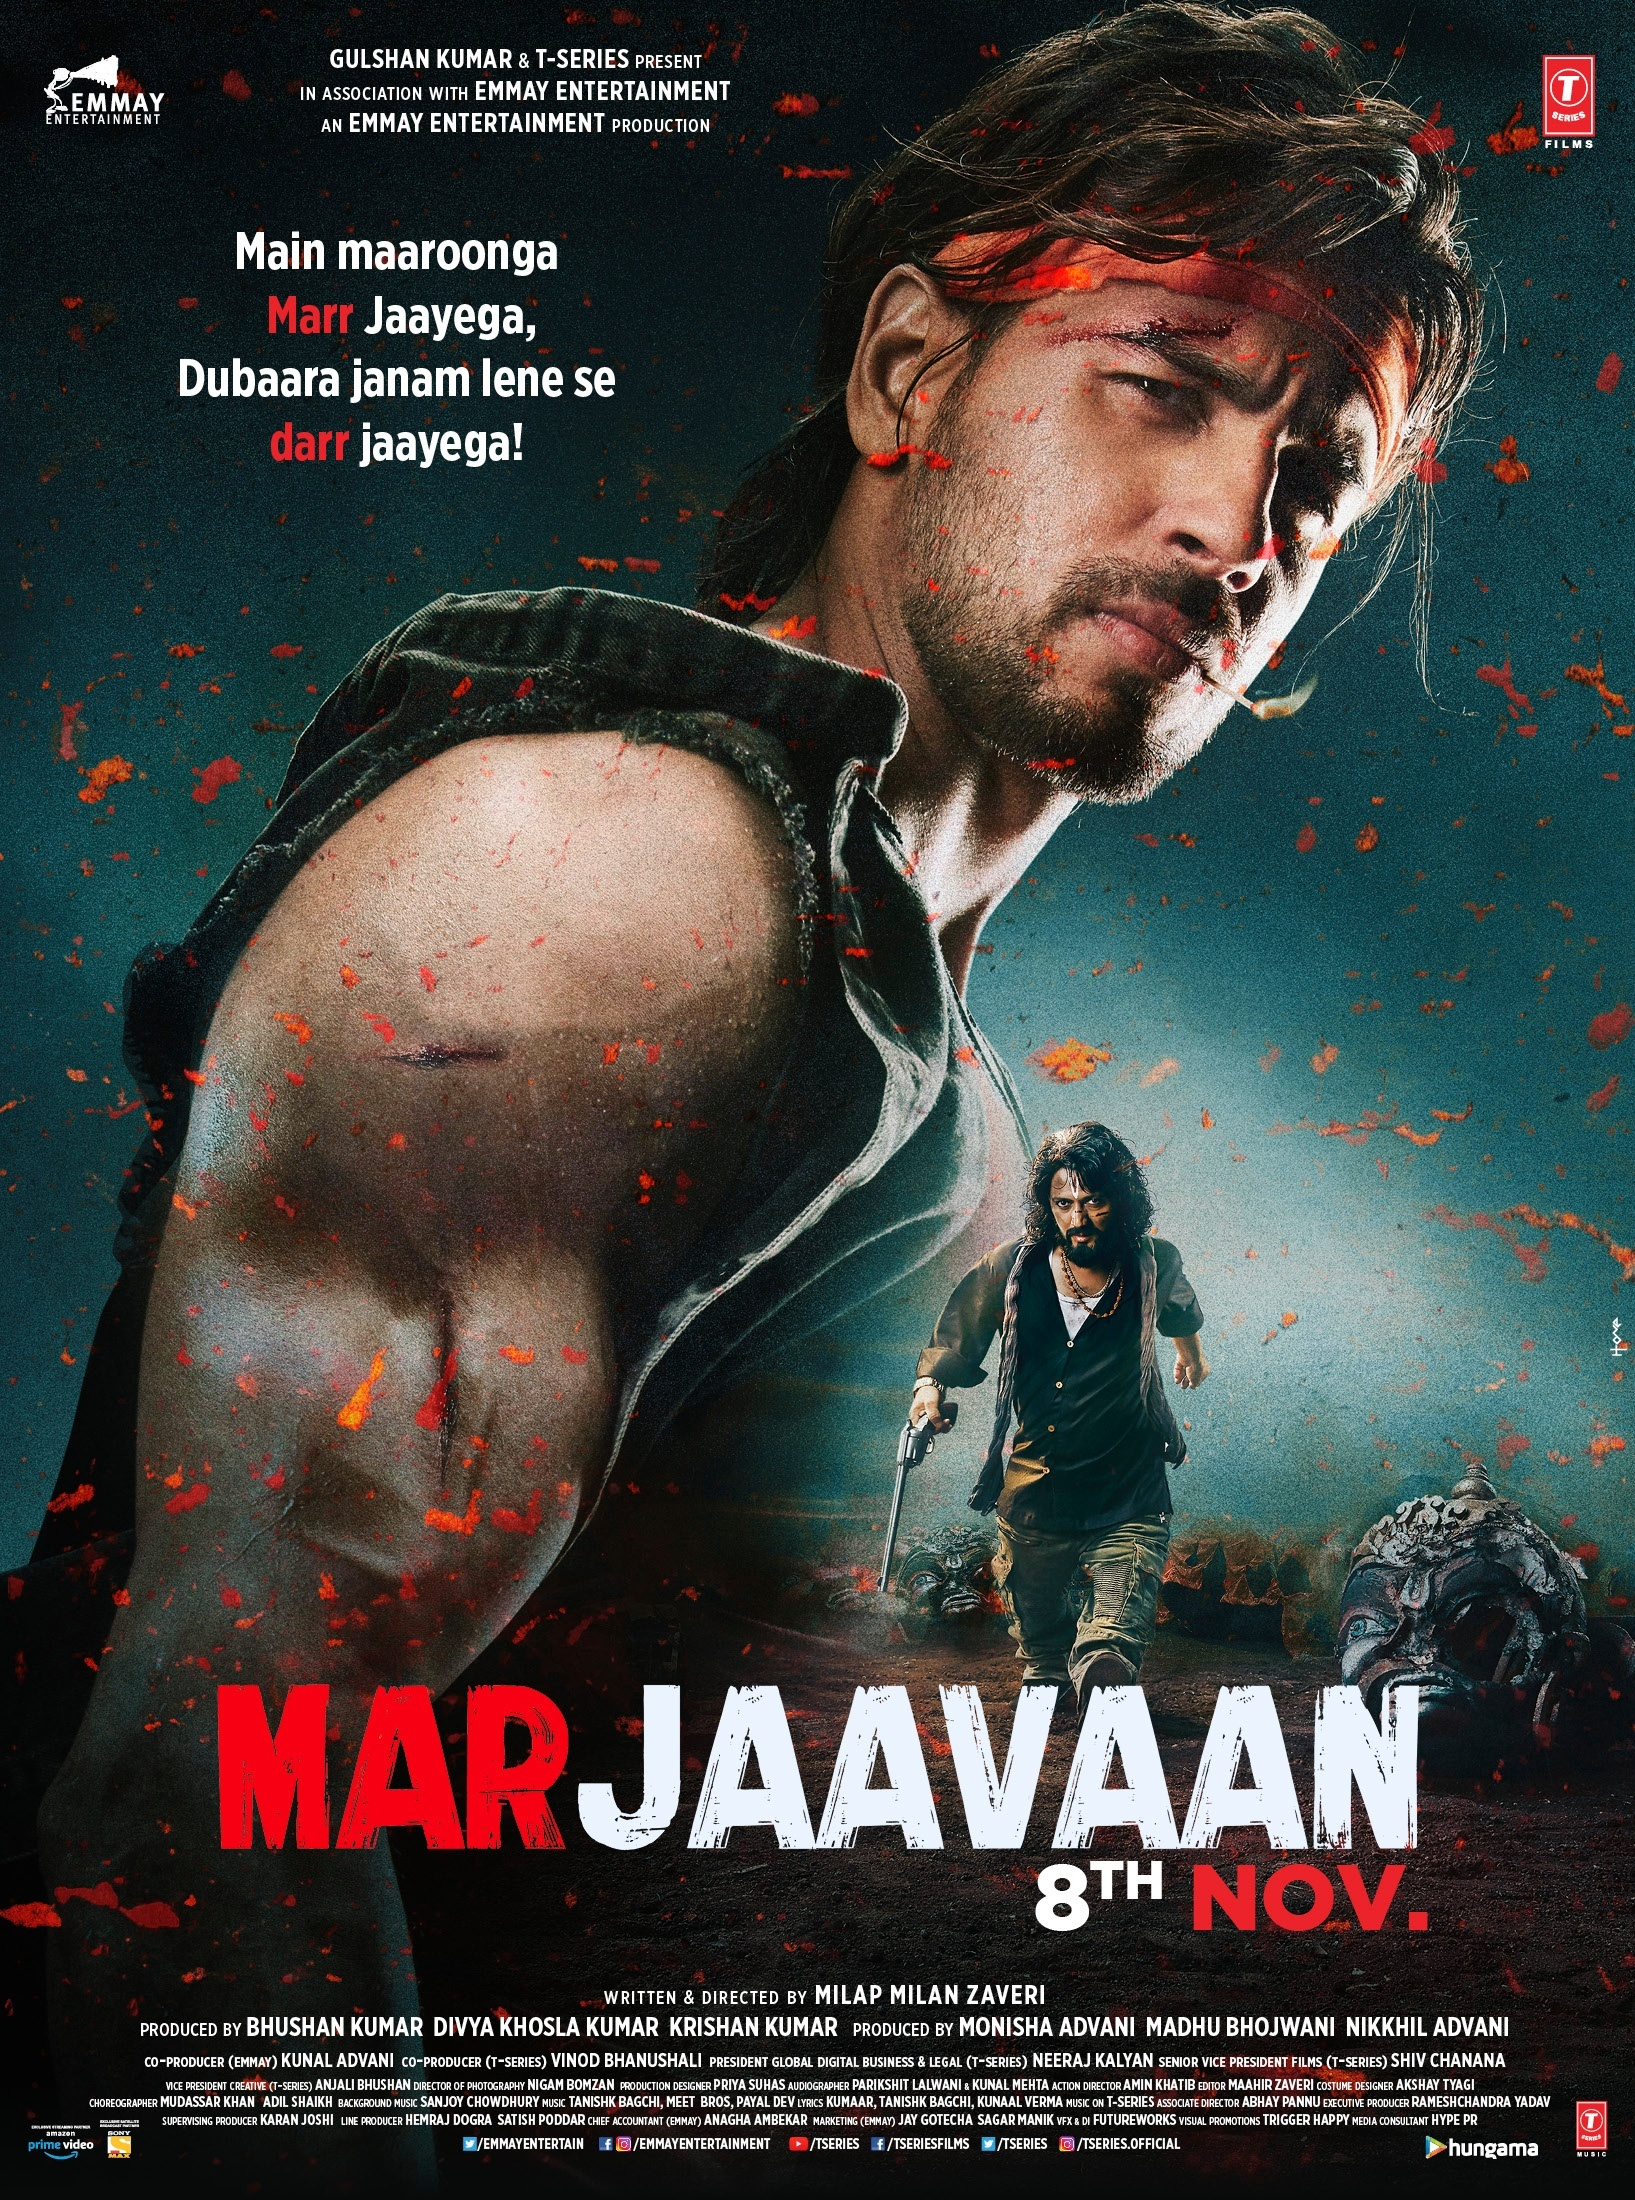 Photo of Marjaavaan to now release on 8th November